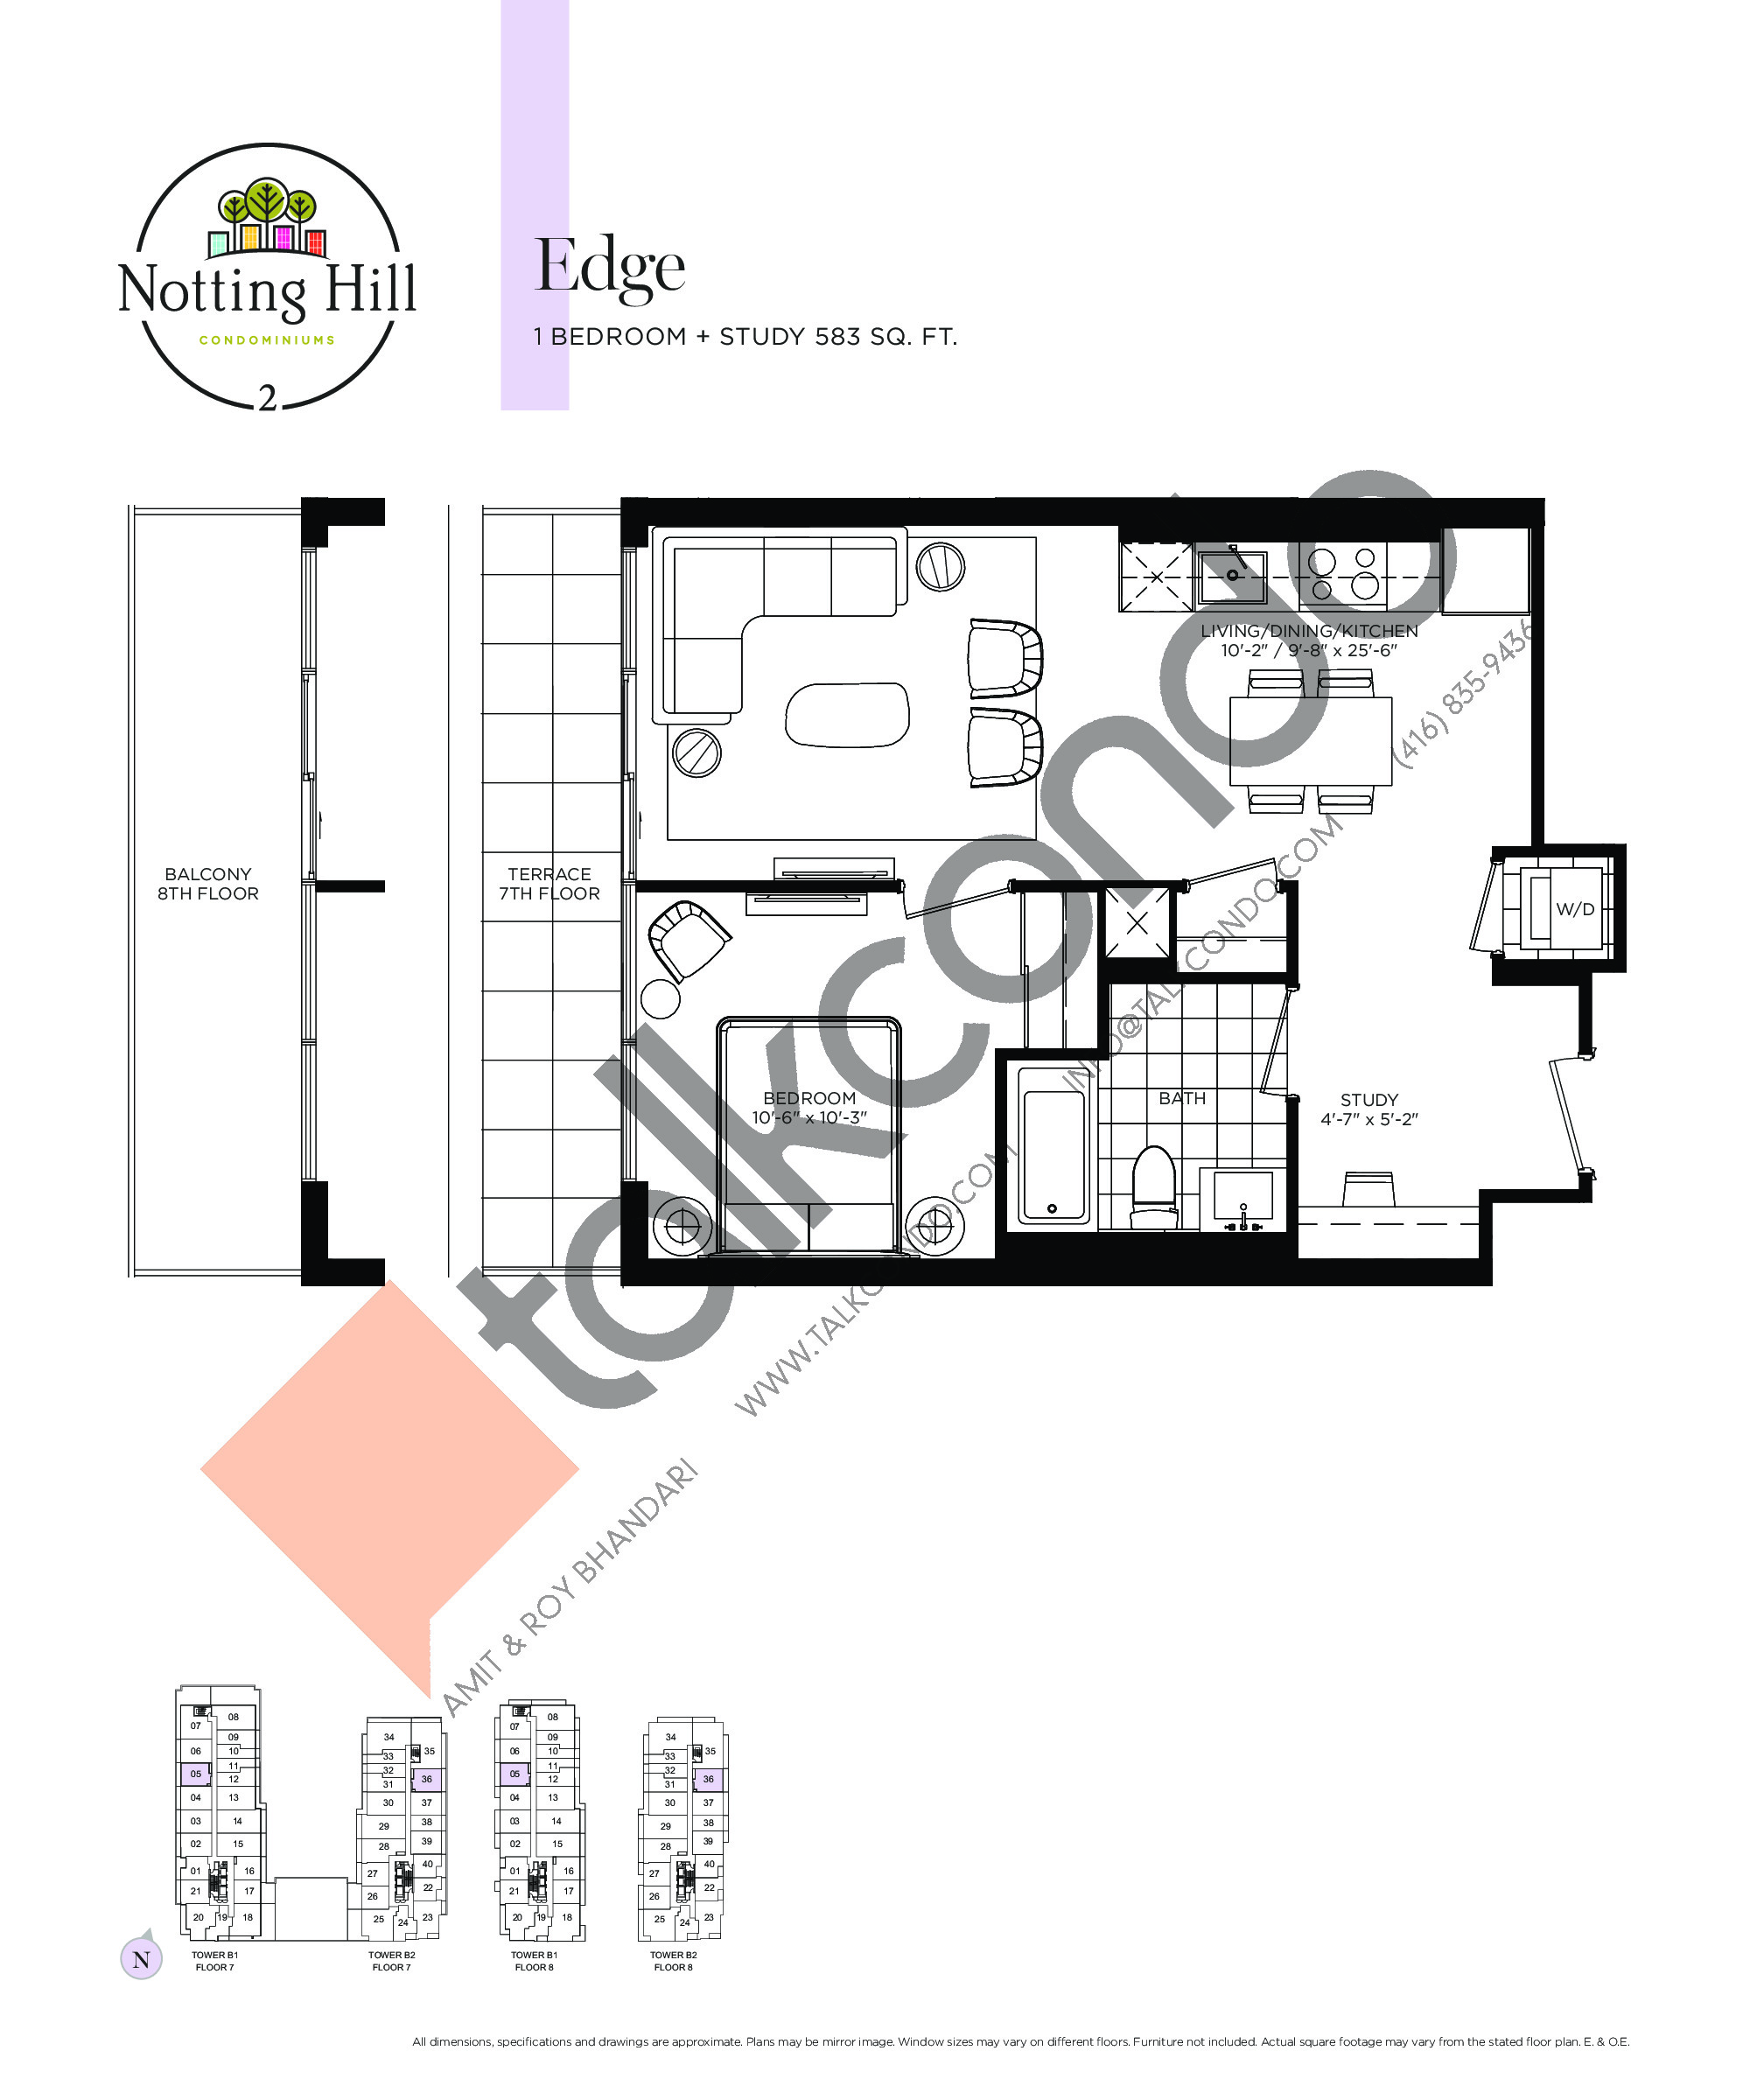 Edge Floor Plan at Notting Hill Phase 3 Condos - 583 sq.ft